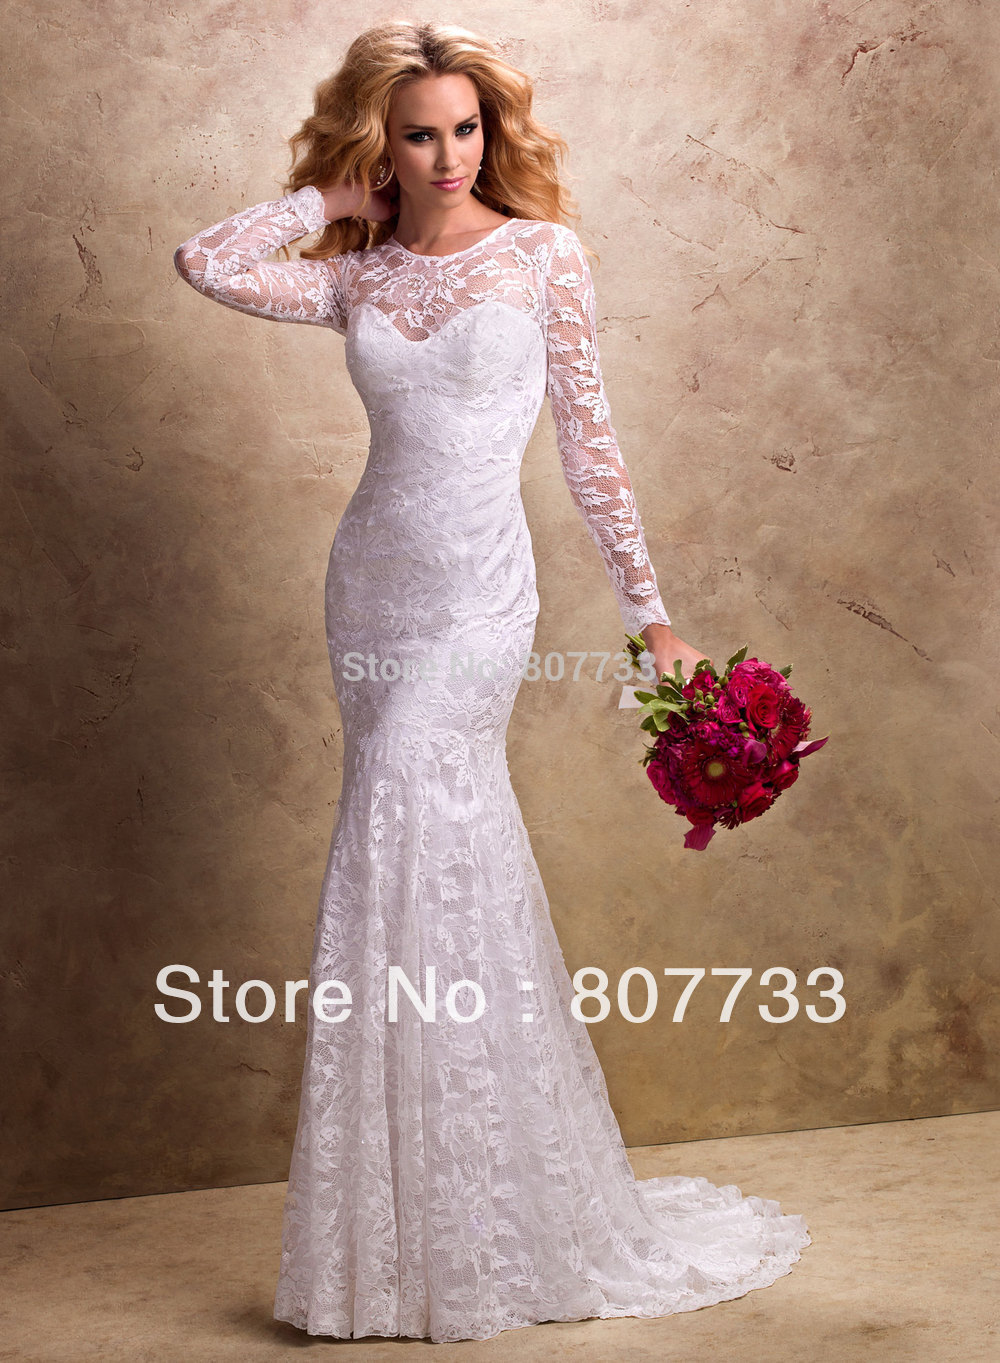 wedding dress with sleeves hairstyle question wedding dress long sleeve Wedding dress with sleeves hairstyle question